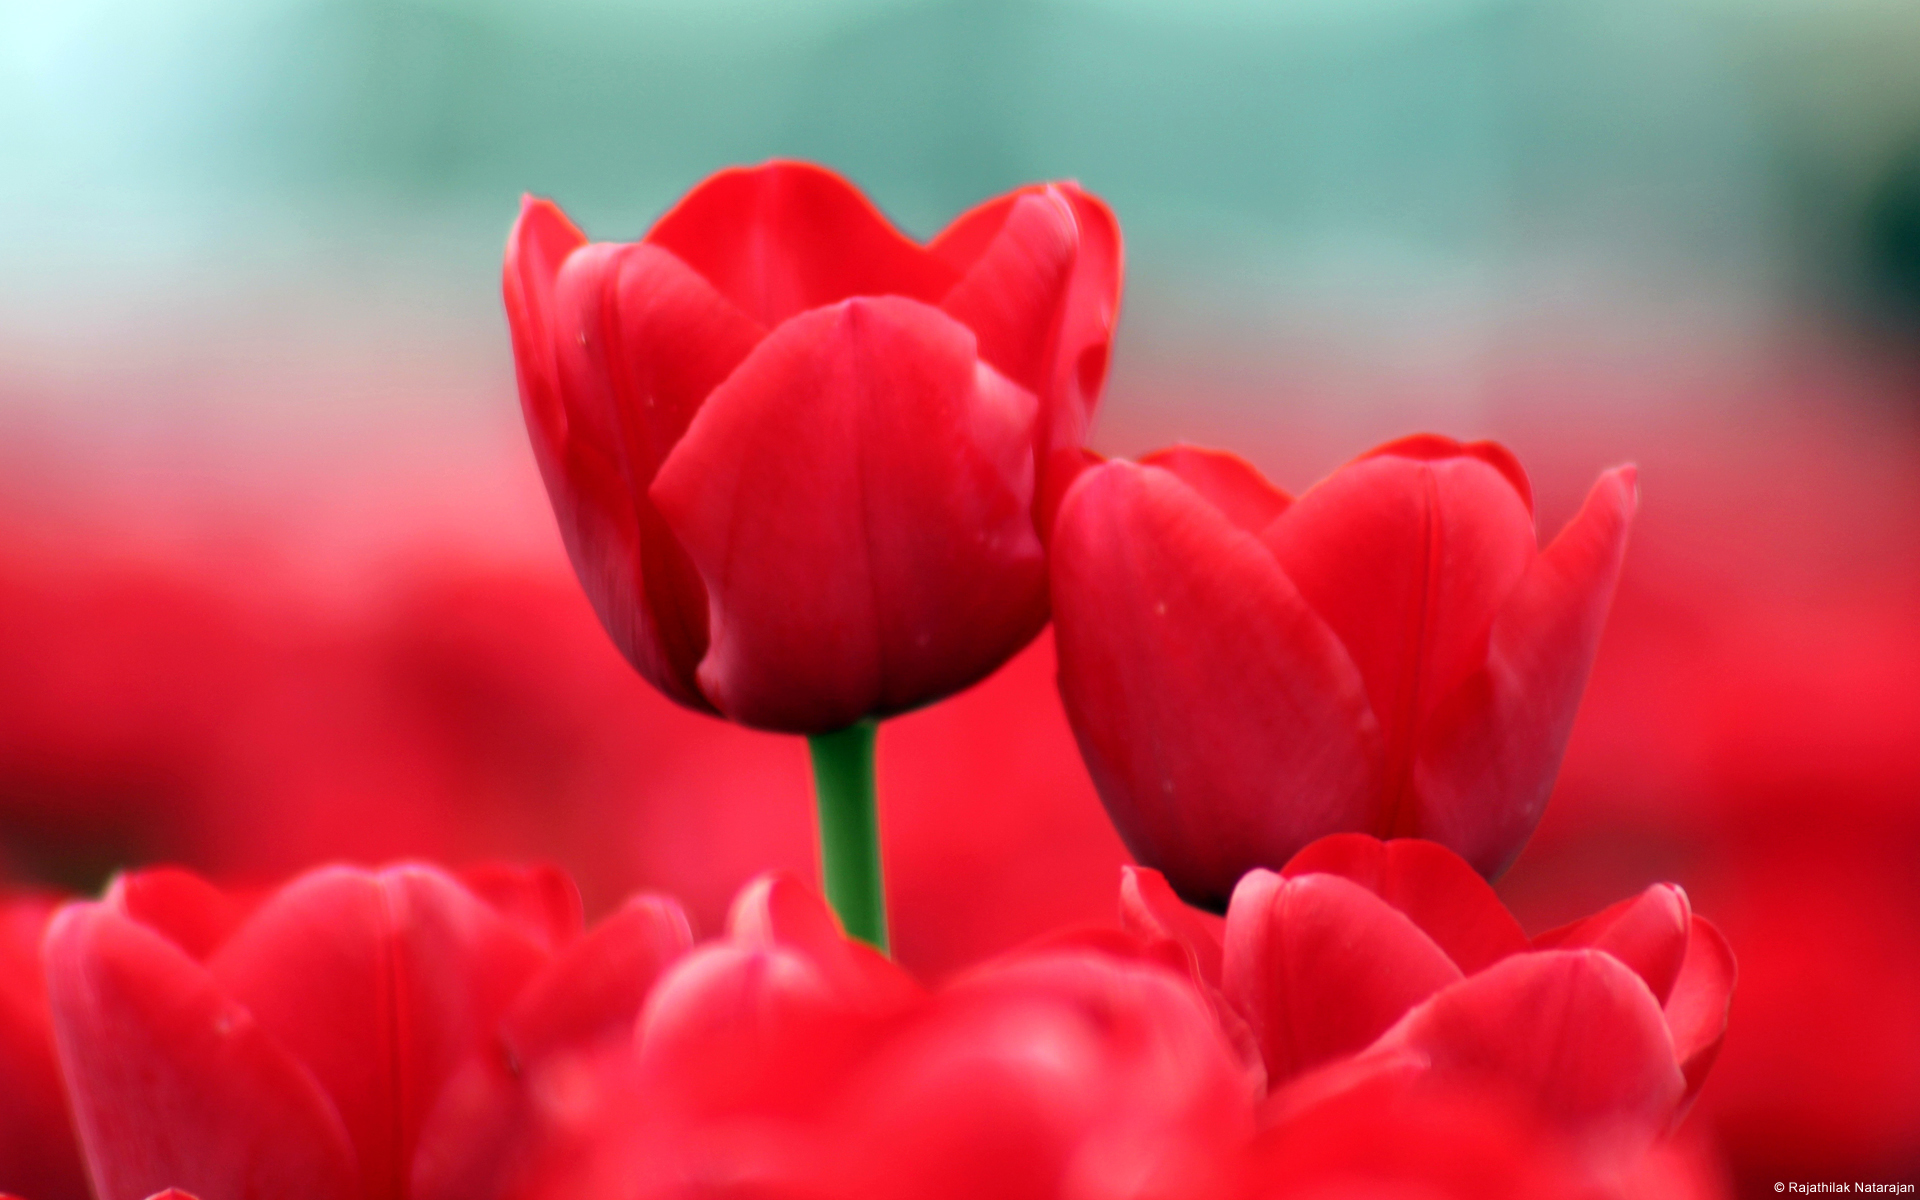 Red Tulips 231.78 Kb